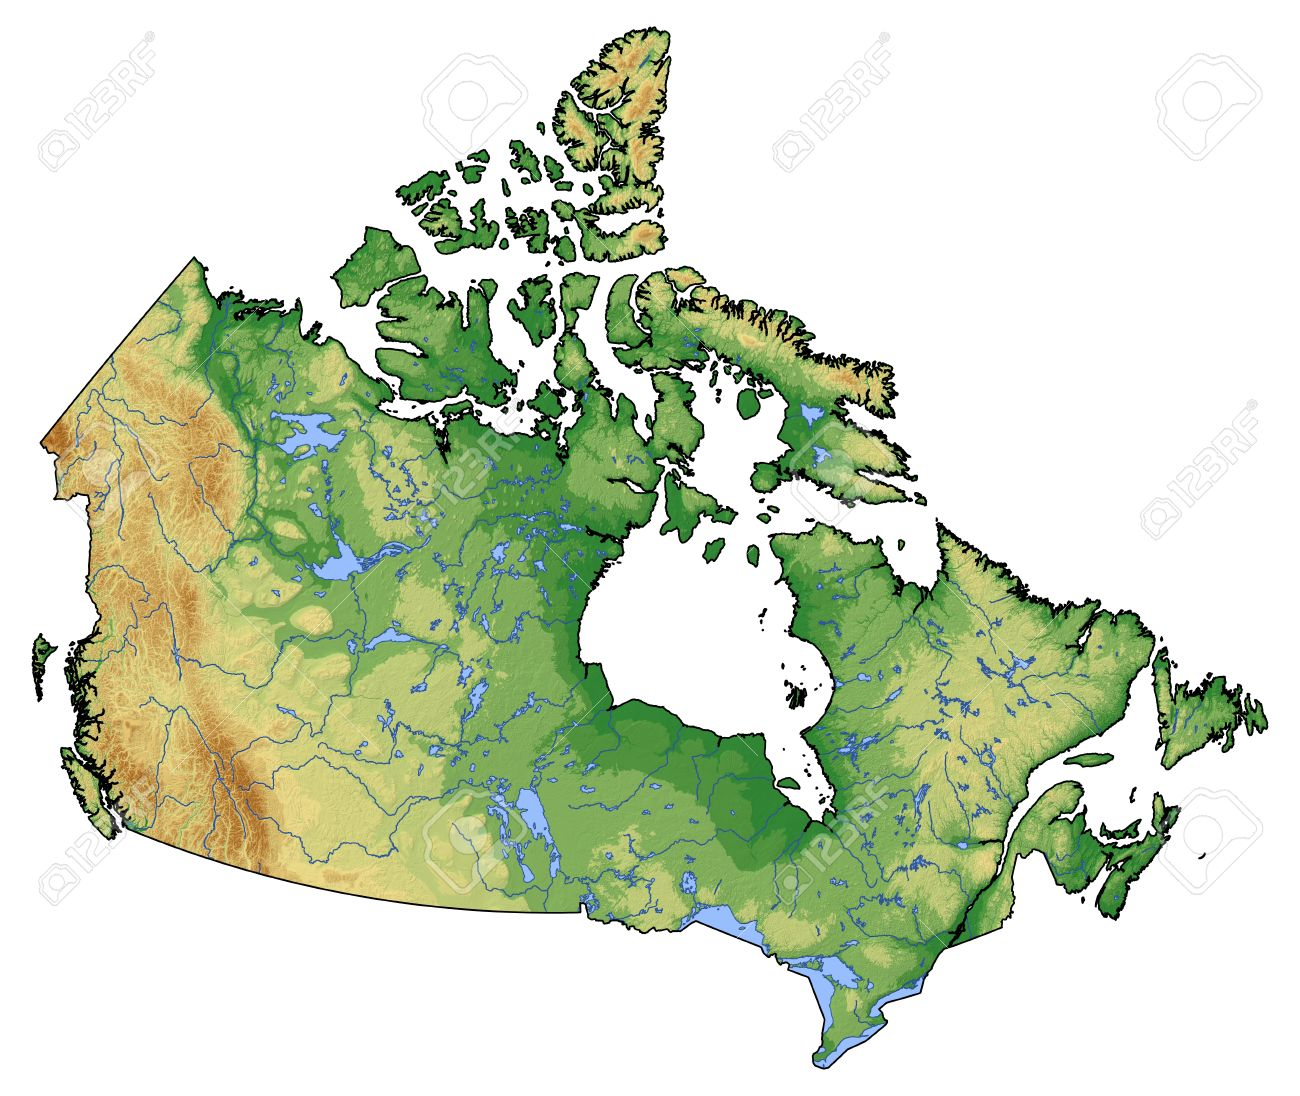 Canada Map Relief Relief Map Of Canada With Shaded Relief. Stock Photo, Picture And